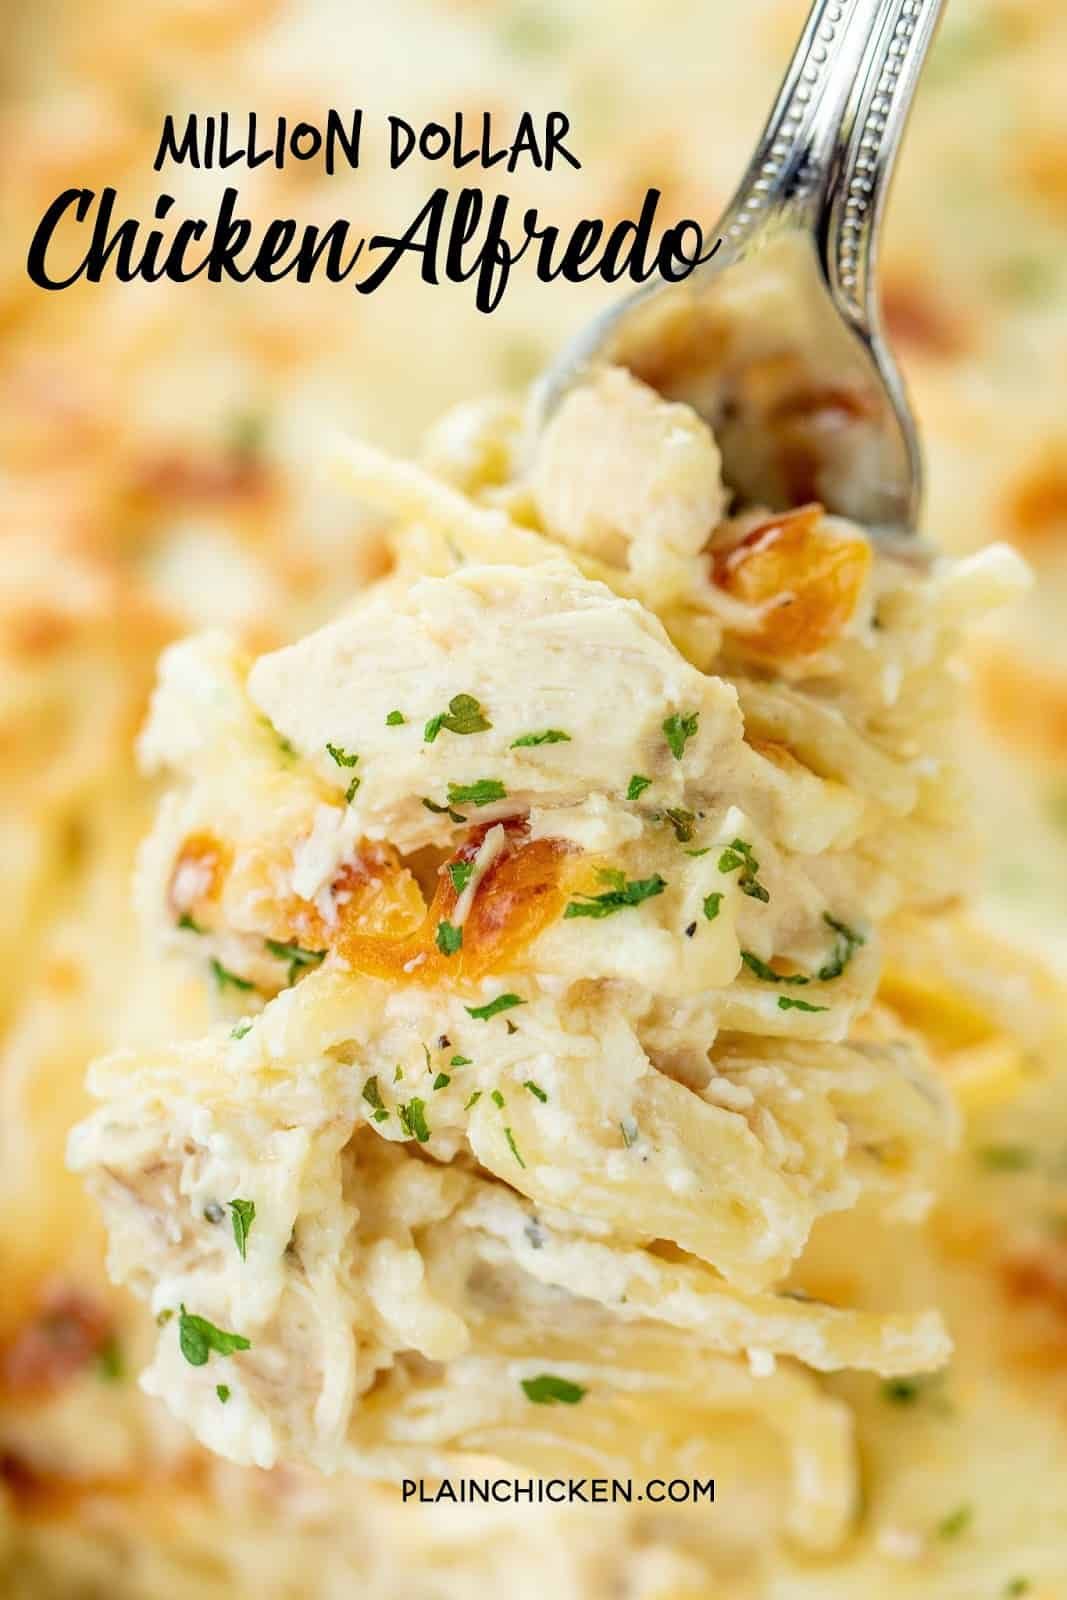 Million Dollar Chicken Alfredo - seriously delicious! Chicken, pasta, alfredo sauce and 4 cheeses! The BEST chicken alfredo EVER!!! Can make ahead and refrigerate or freeze for later. Spaghetti, cream cheese, sour cream, cottage cheese, chicken, Alfredo sauce, parmesan cheese and mozzarella cheese. Serve with a simple salad and garlic bread. Great for dinner parties and potlucks! Everyone loves this easy casserole! I never have any leftovers!! #casserole #chickencasserole #pasta #freezermeal